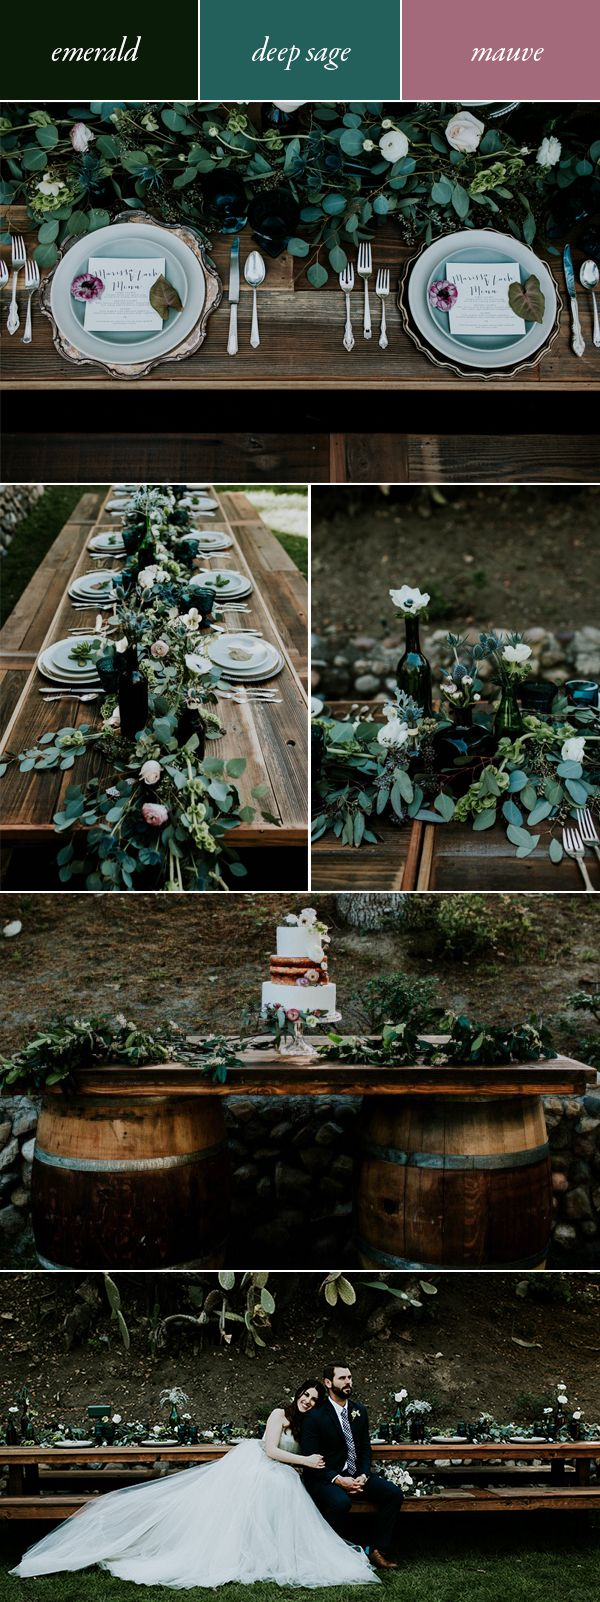 Try emerald, deep sage, & mauve for a moody, romantic air   Image by Jessie Schultz Photography